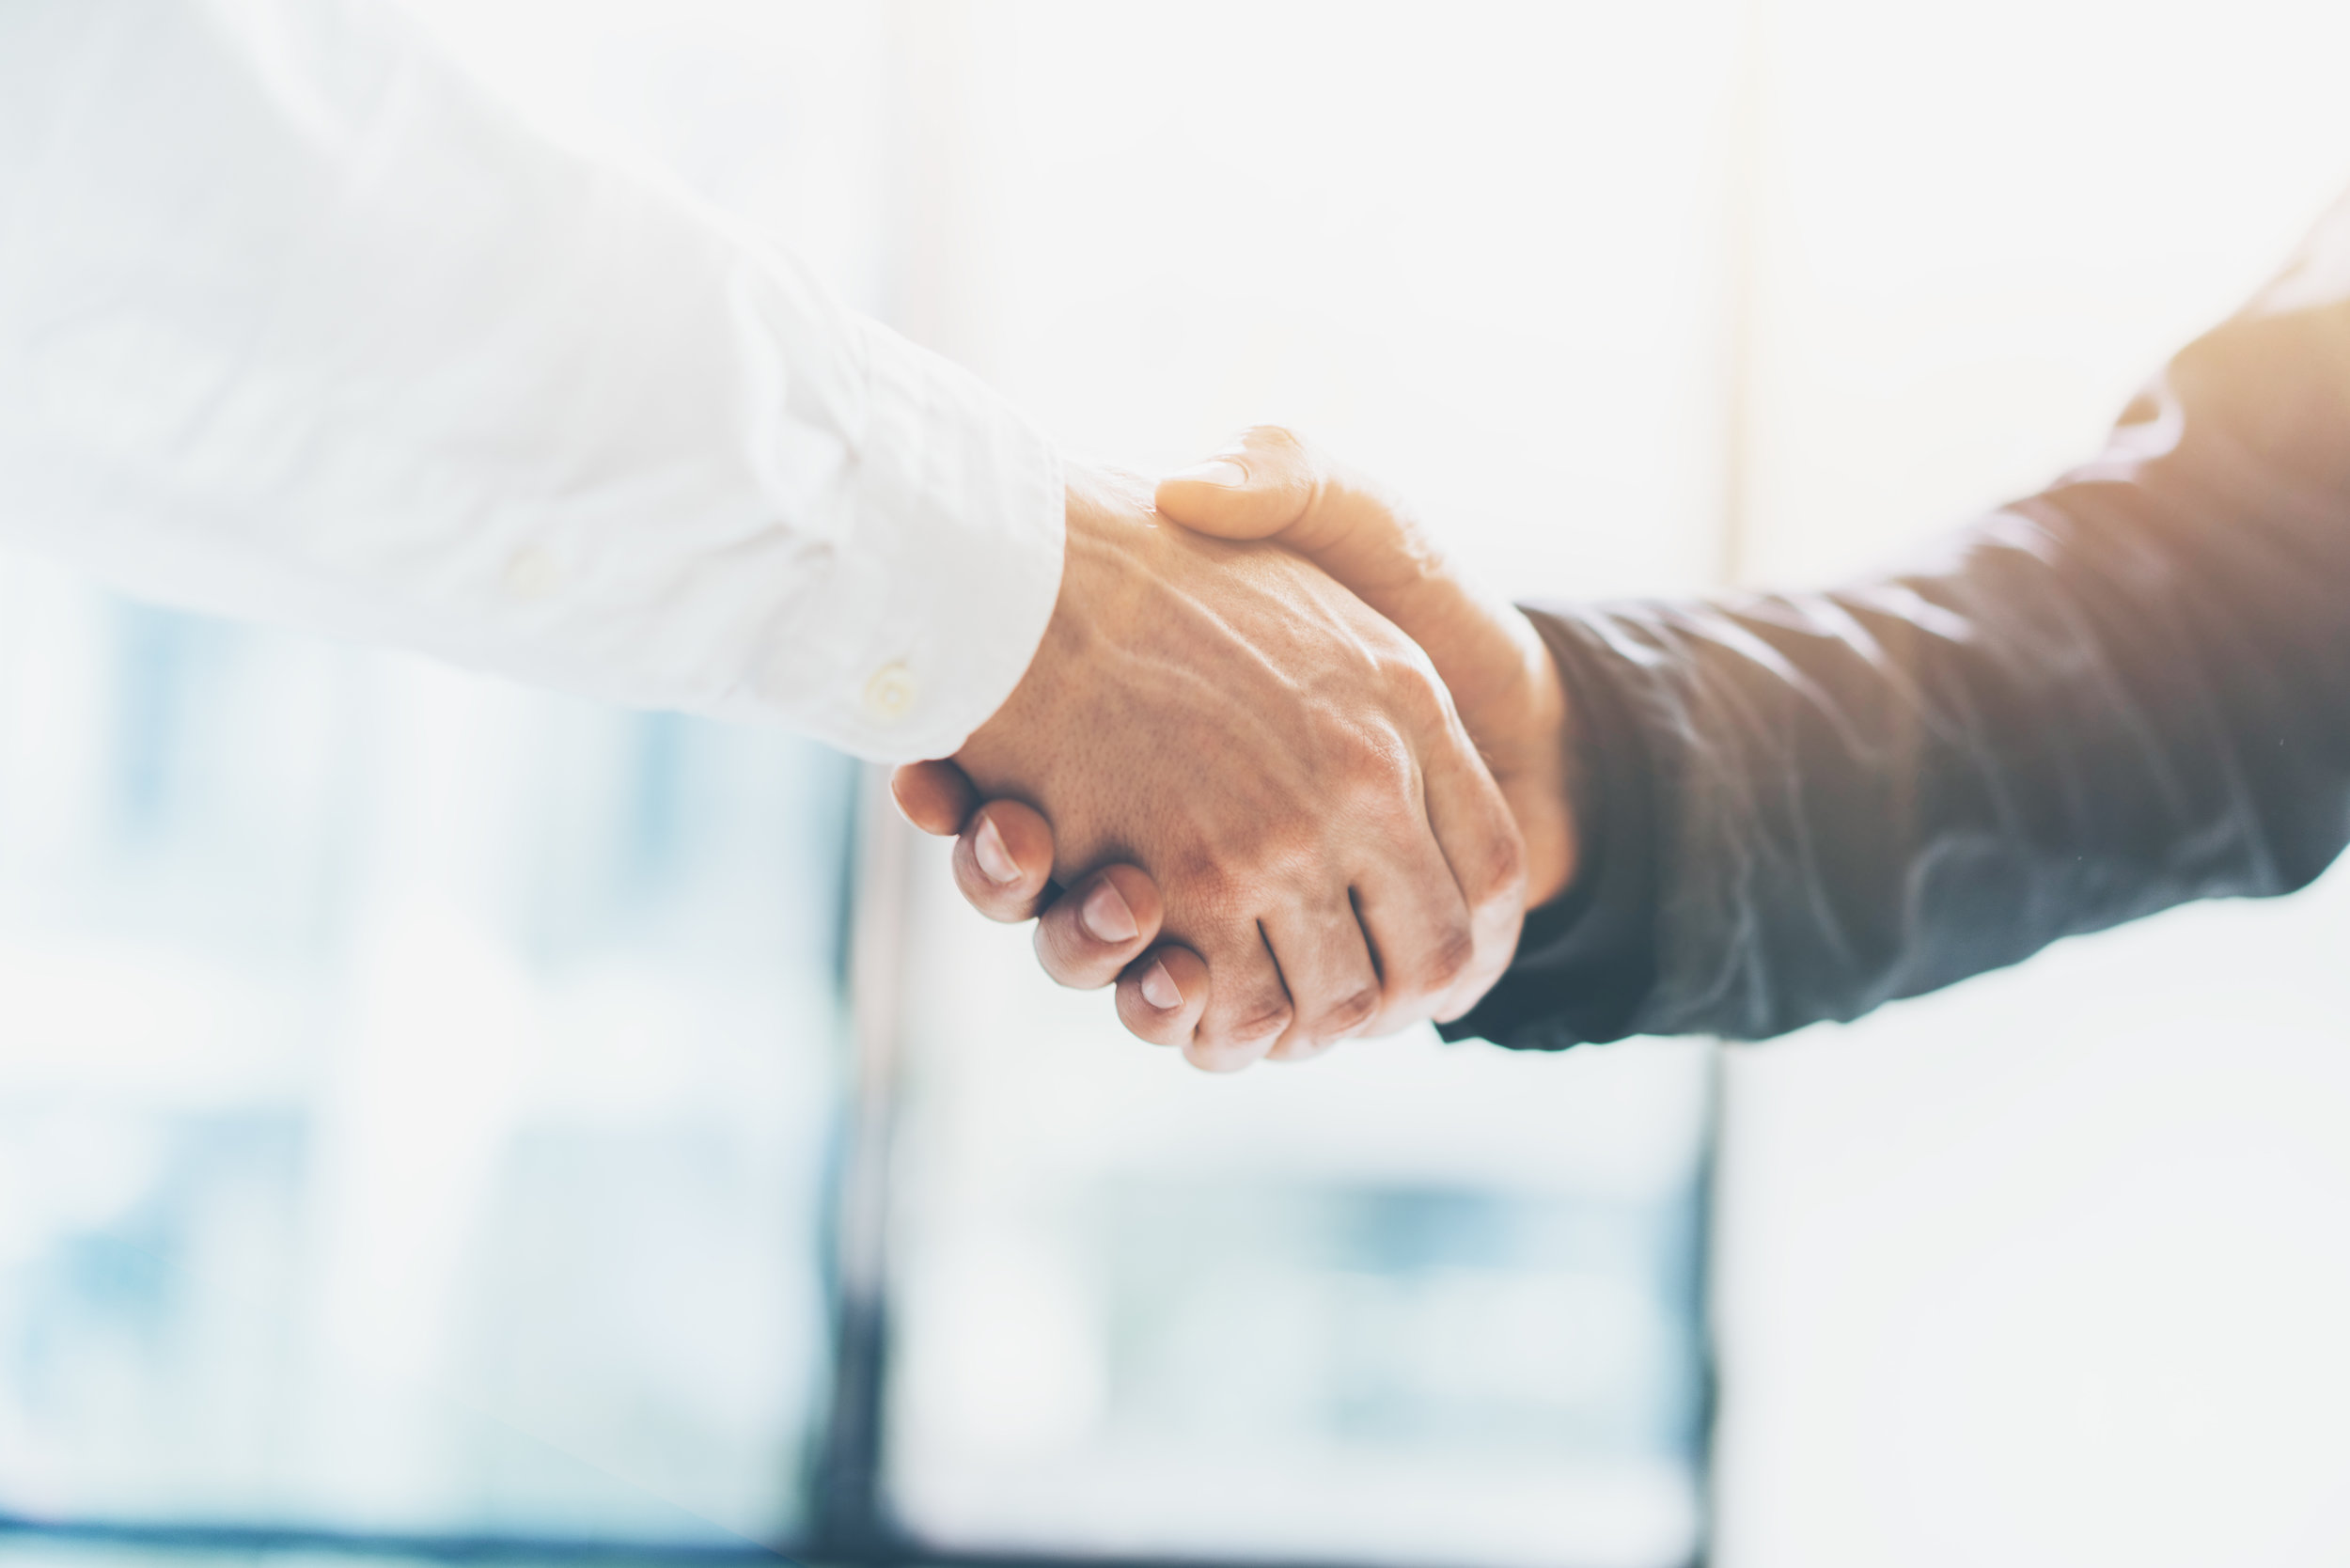 Our Partners - The following partners make it possible for us to customize the perfect plan. No matter that type of plan you need, we offer a variety of affordable options with dependable coverage and an extensive network and will be with you every step of the way should your needs evolve!